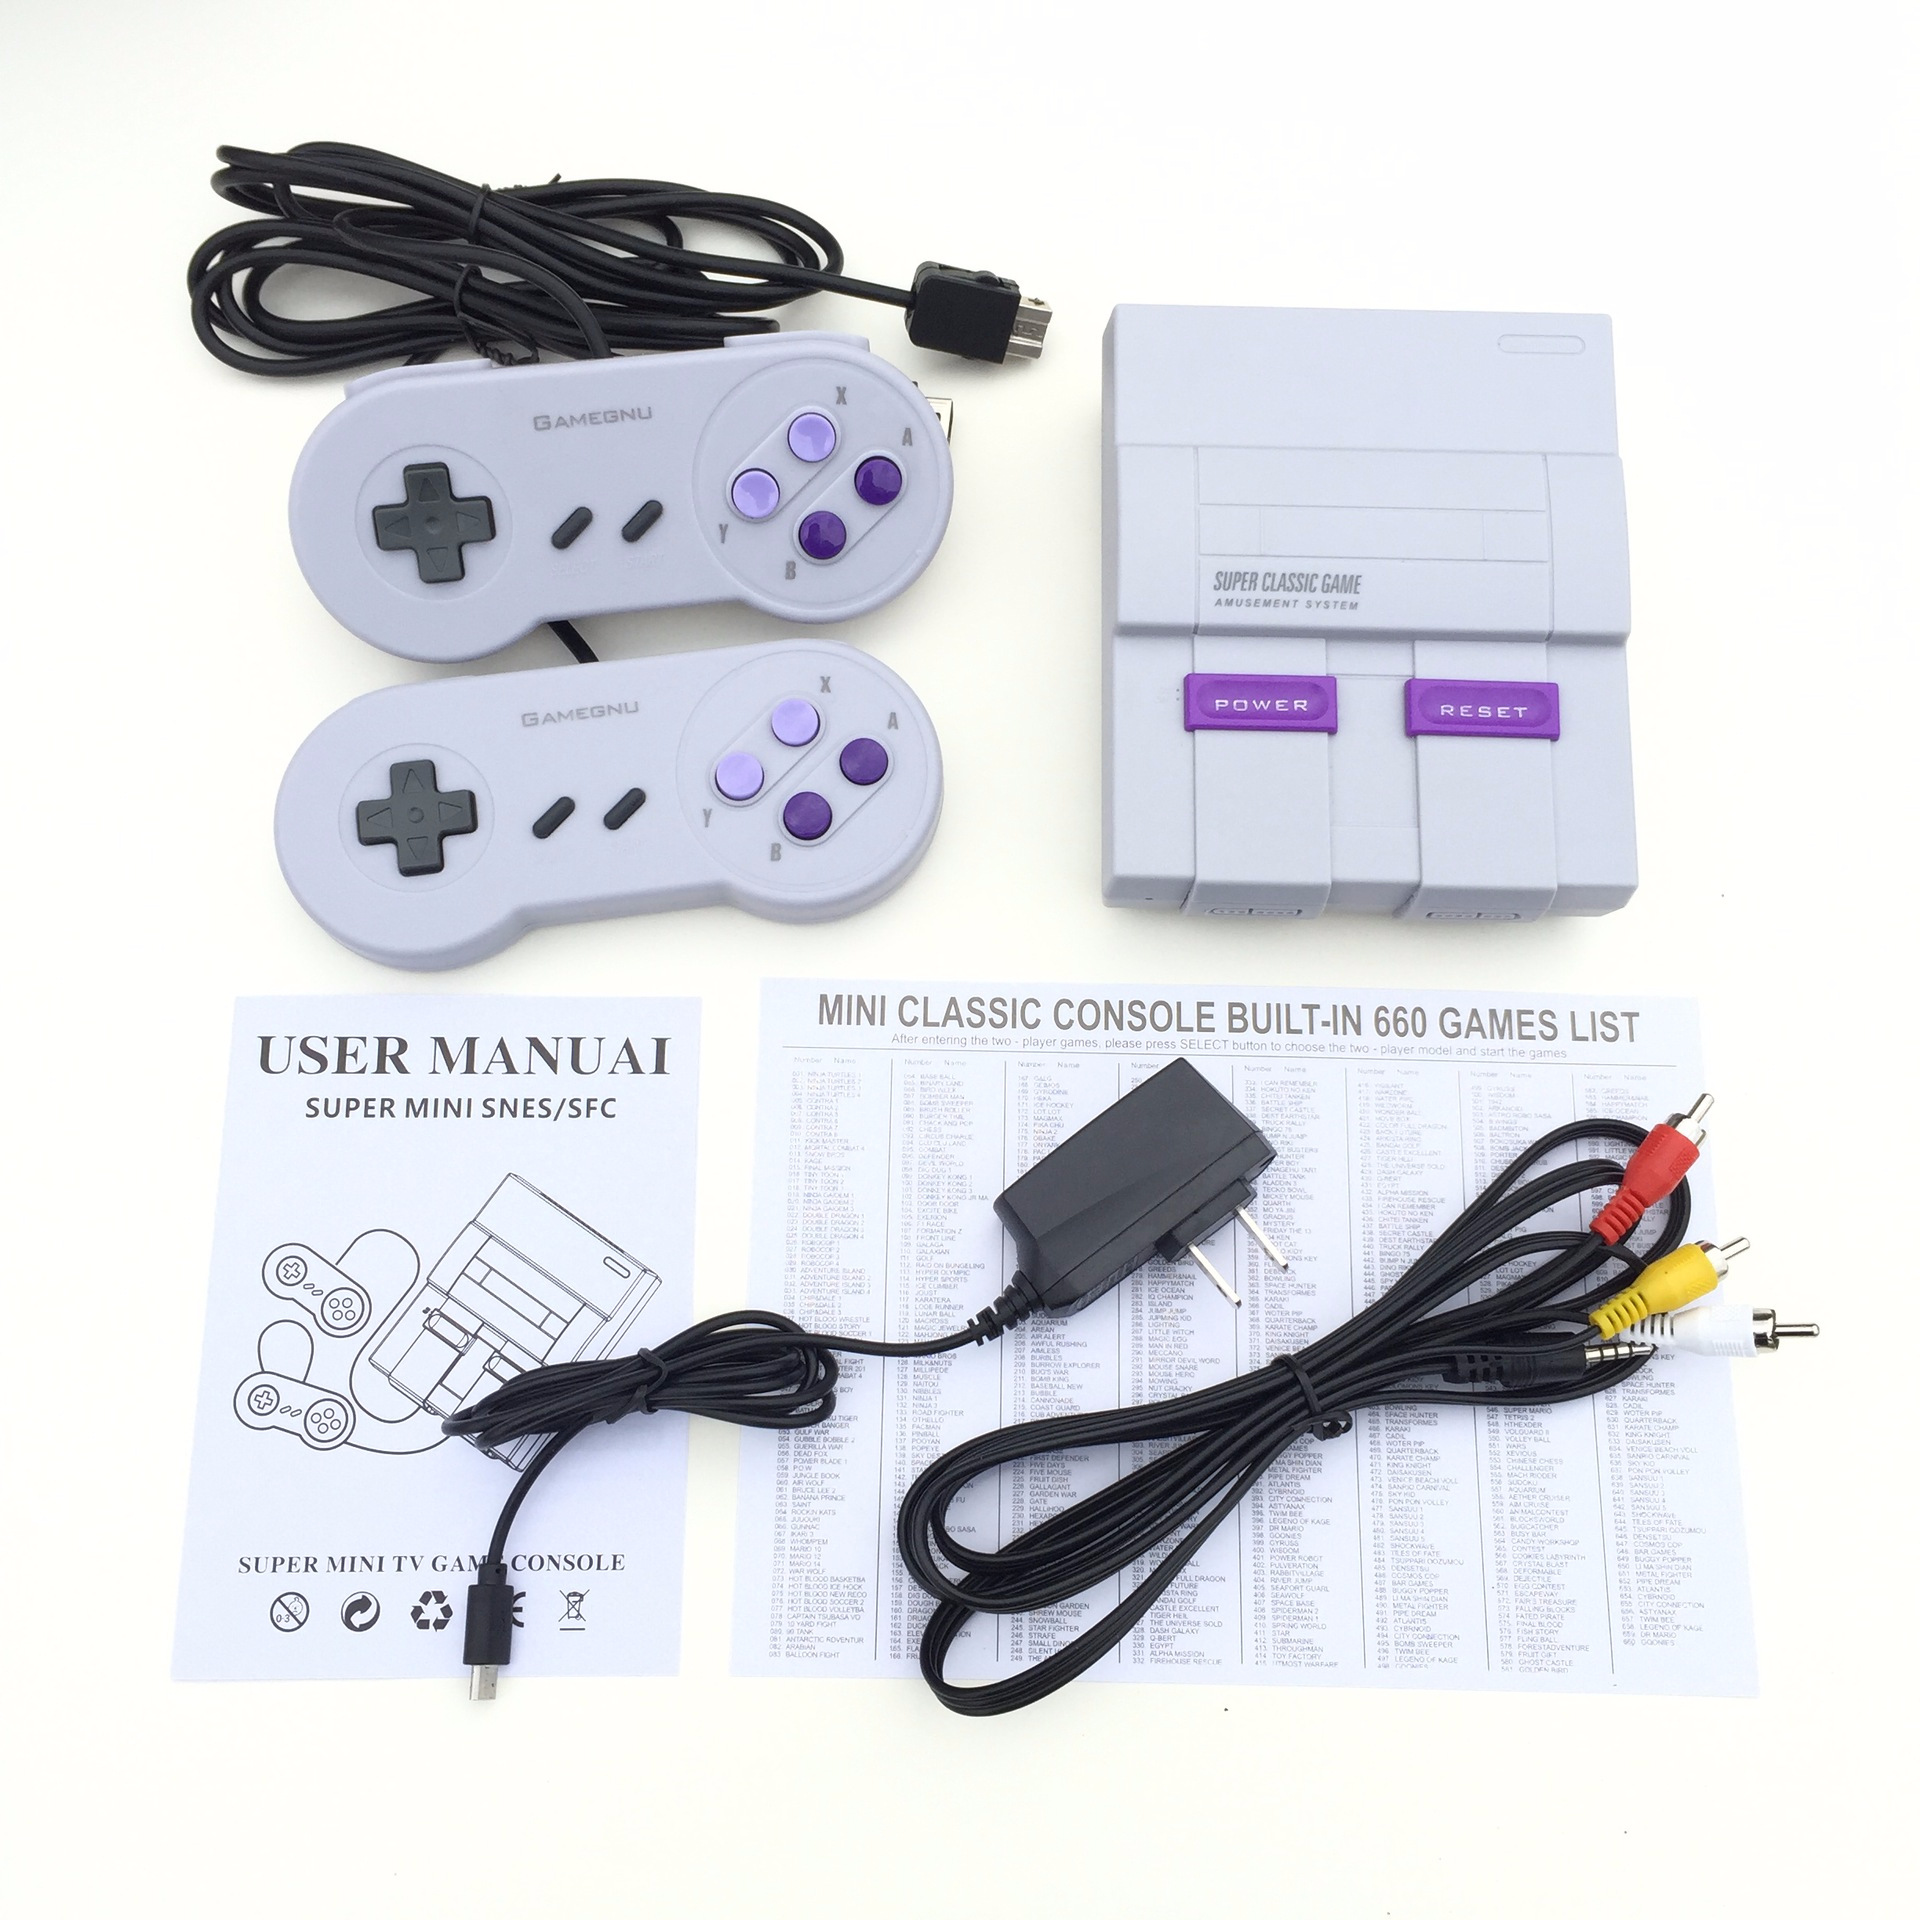 Mini retro super classic game console built-in 620 games handheld game TV 8-bit home TV video game console gift